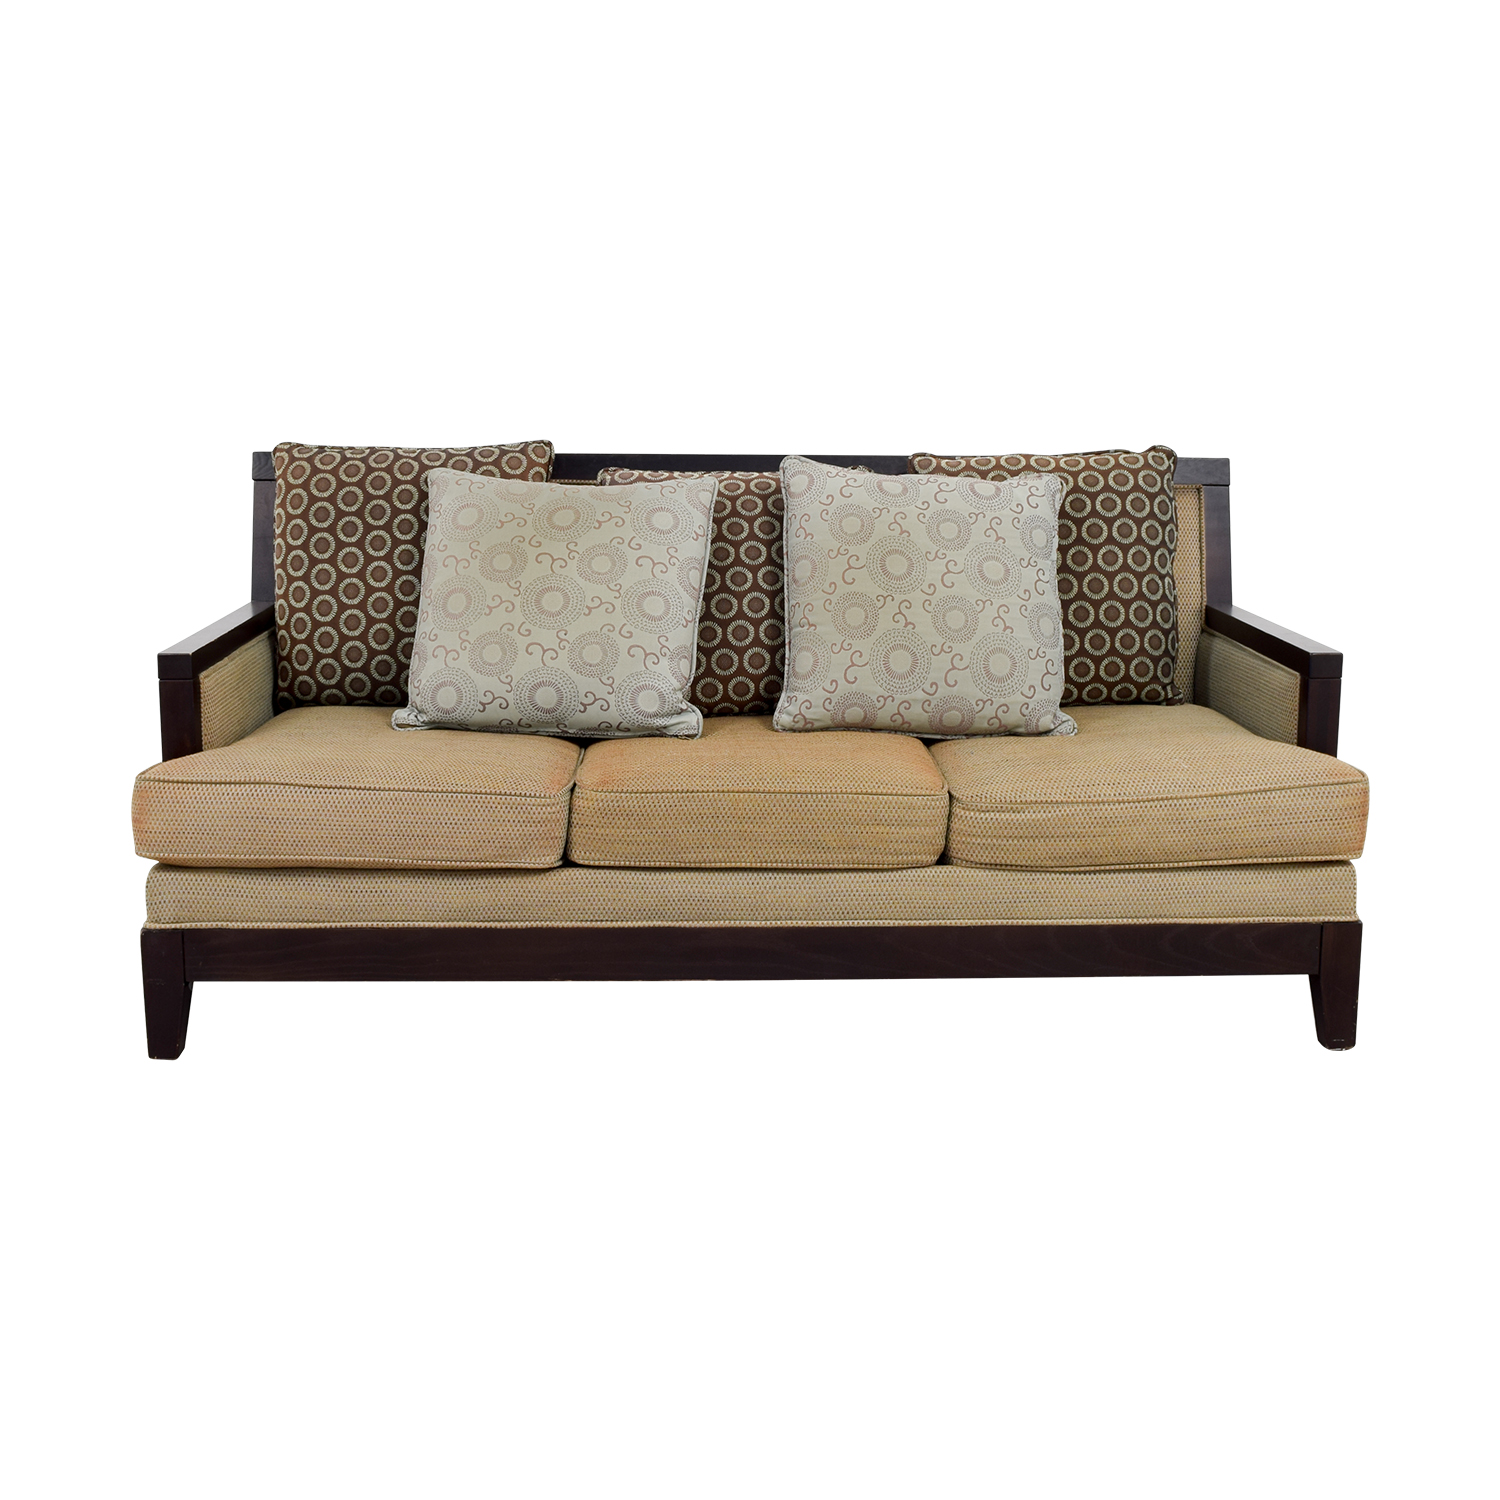 90 Off Tan Three Cushion Couch With Wood Frame Sofas